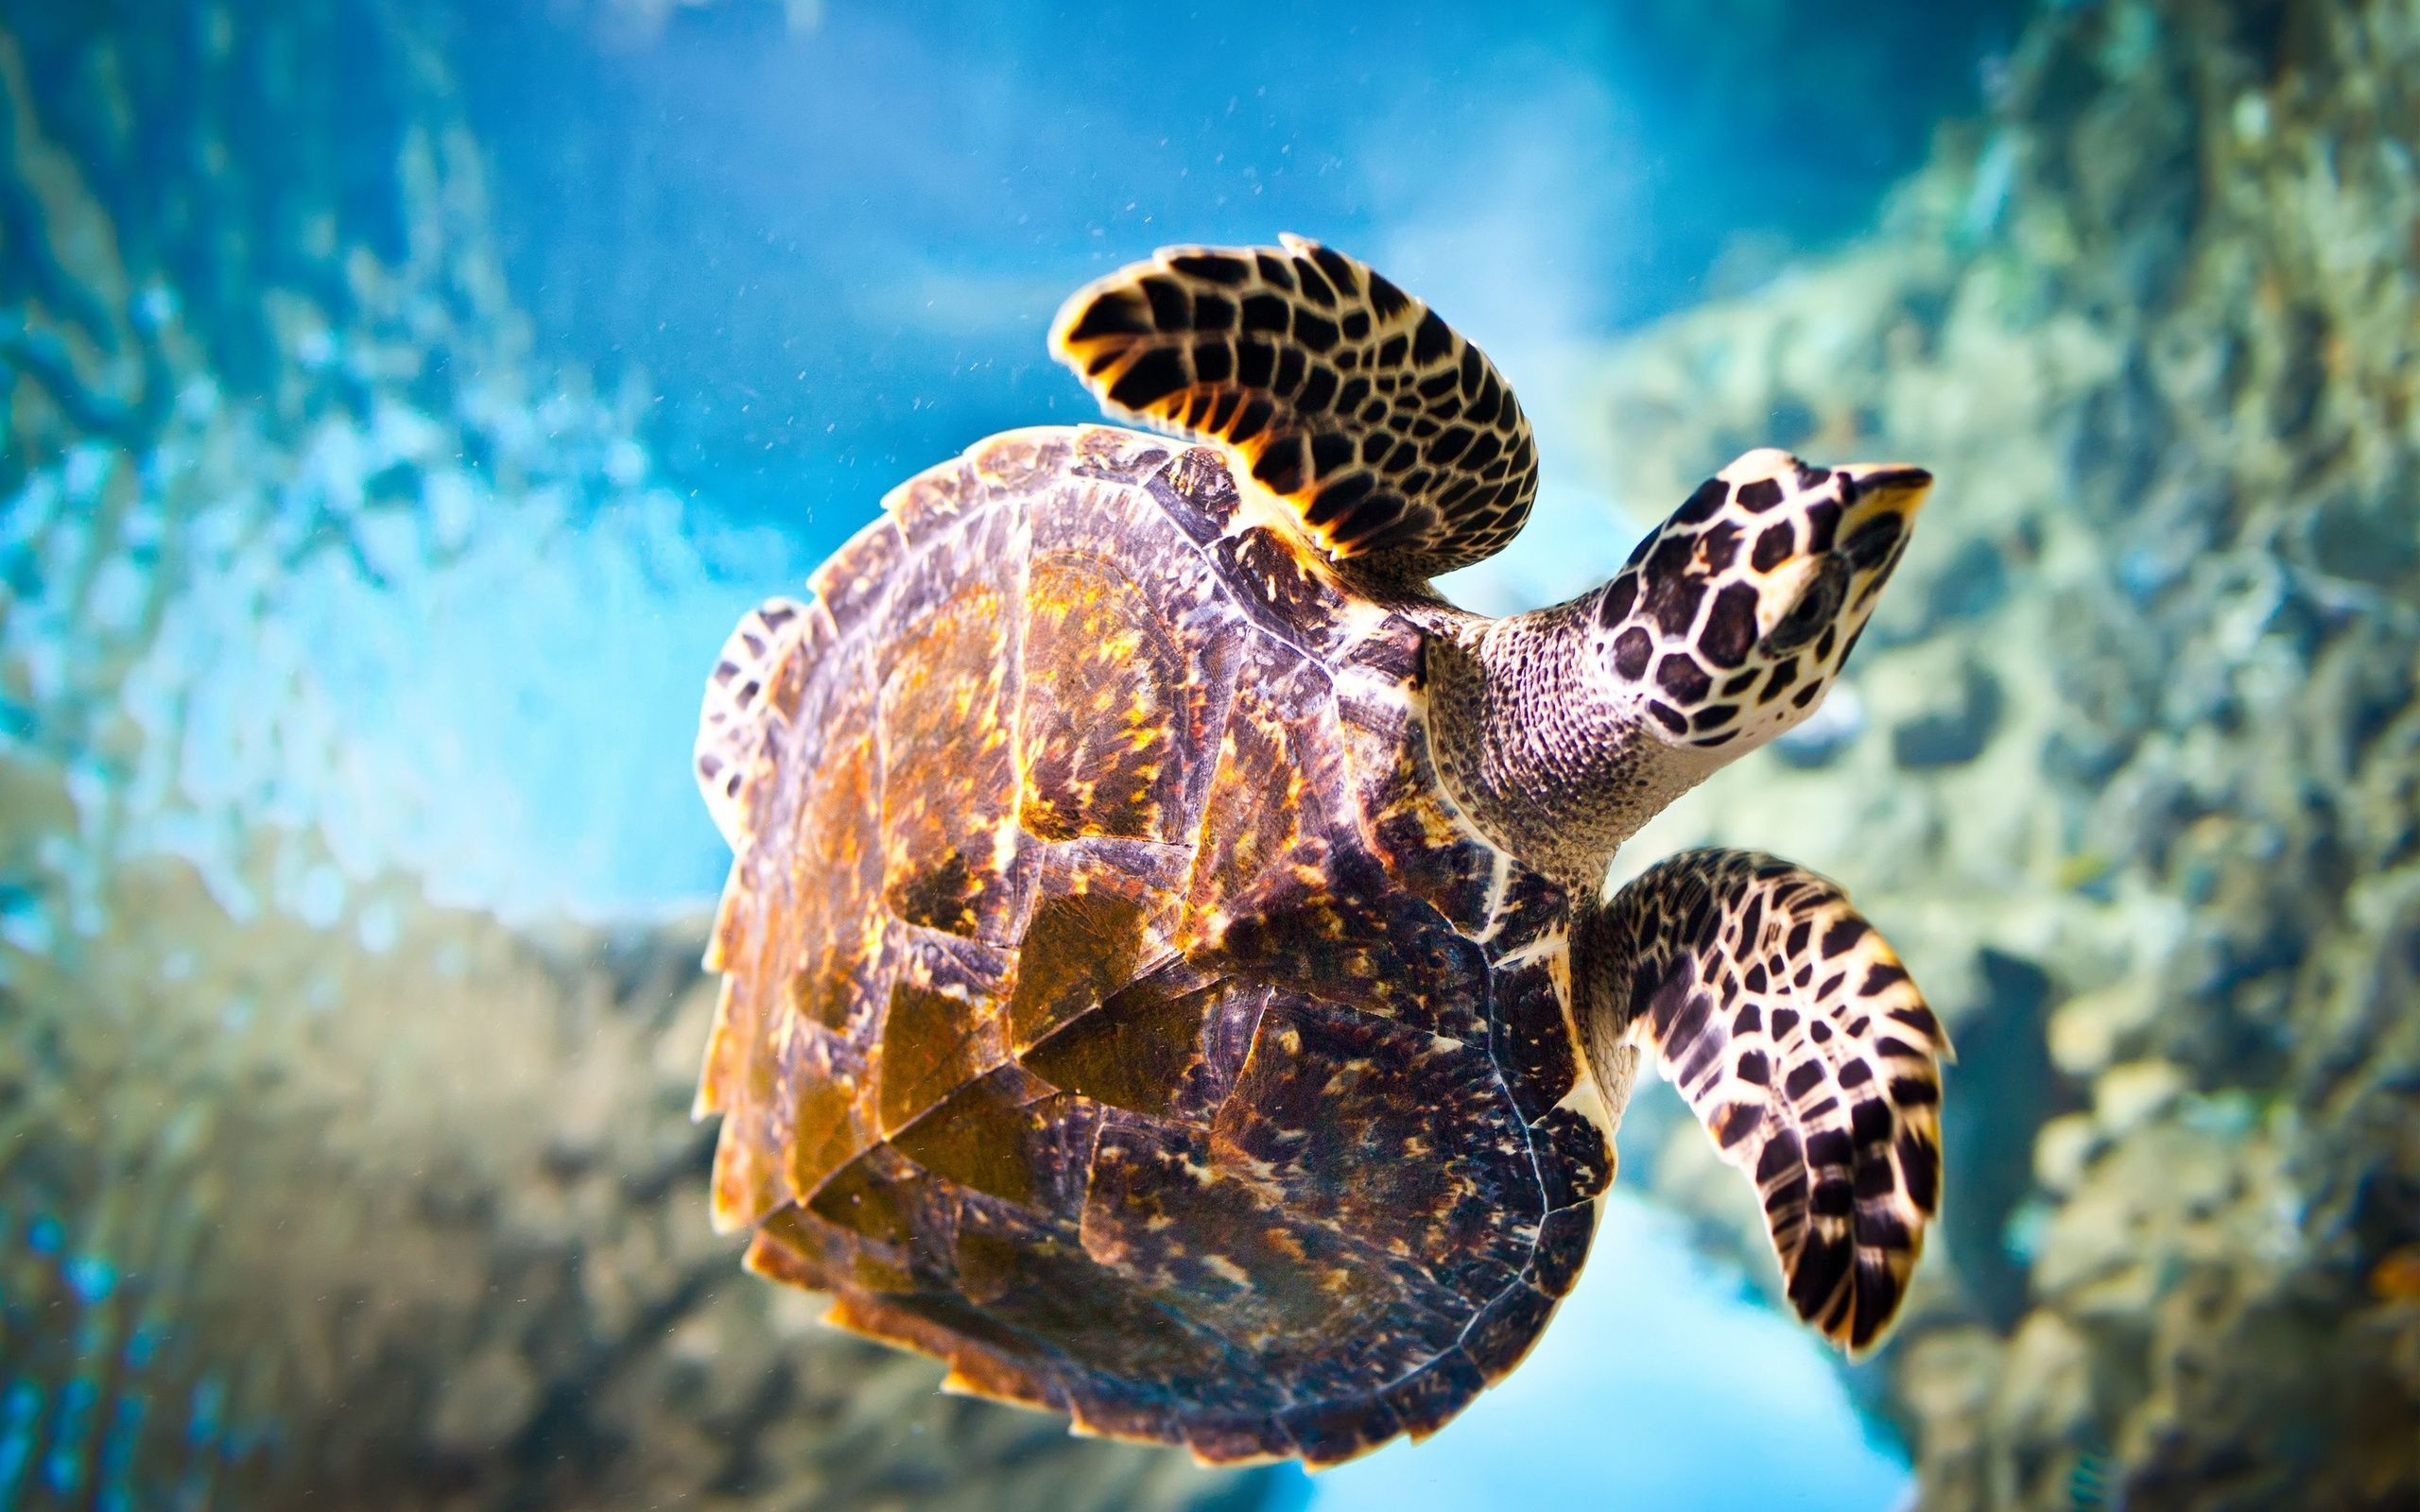 2560x1600 65+ HD Turtle Wallpapers - Download at WallpaperBro